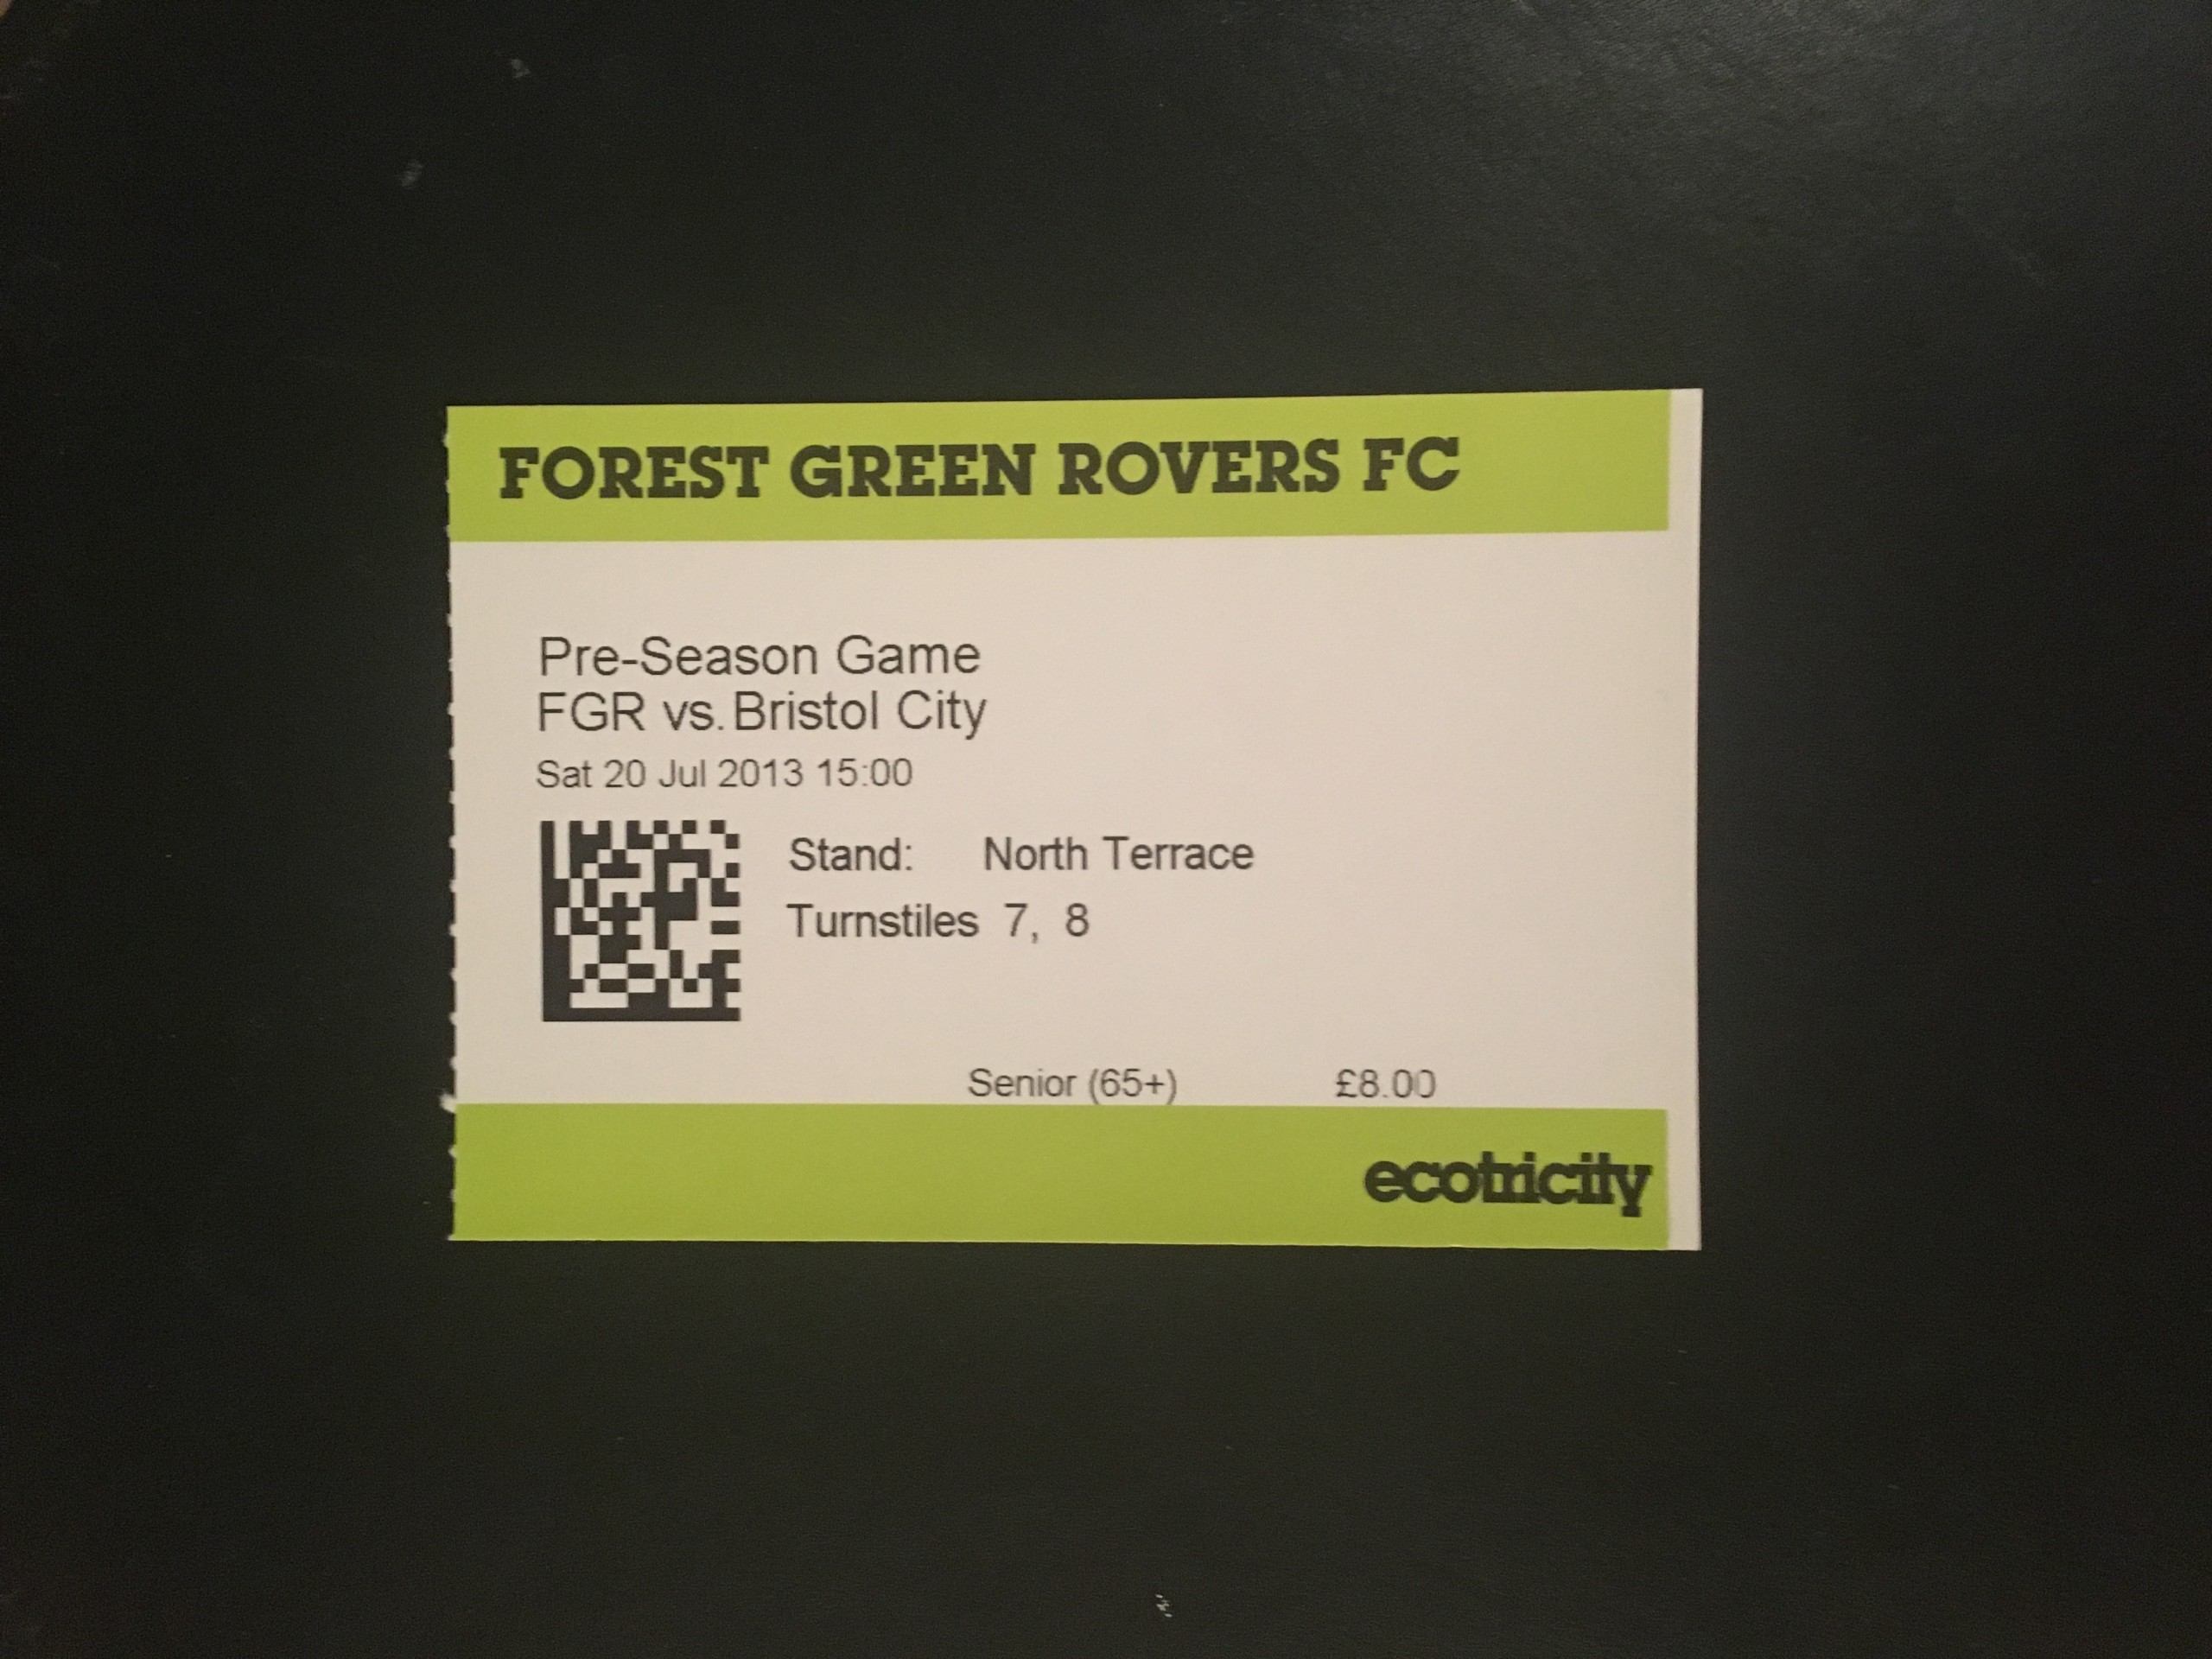 Forest Green Rovers v Bristol City 20-07-2013 Ticket